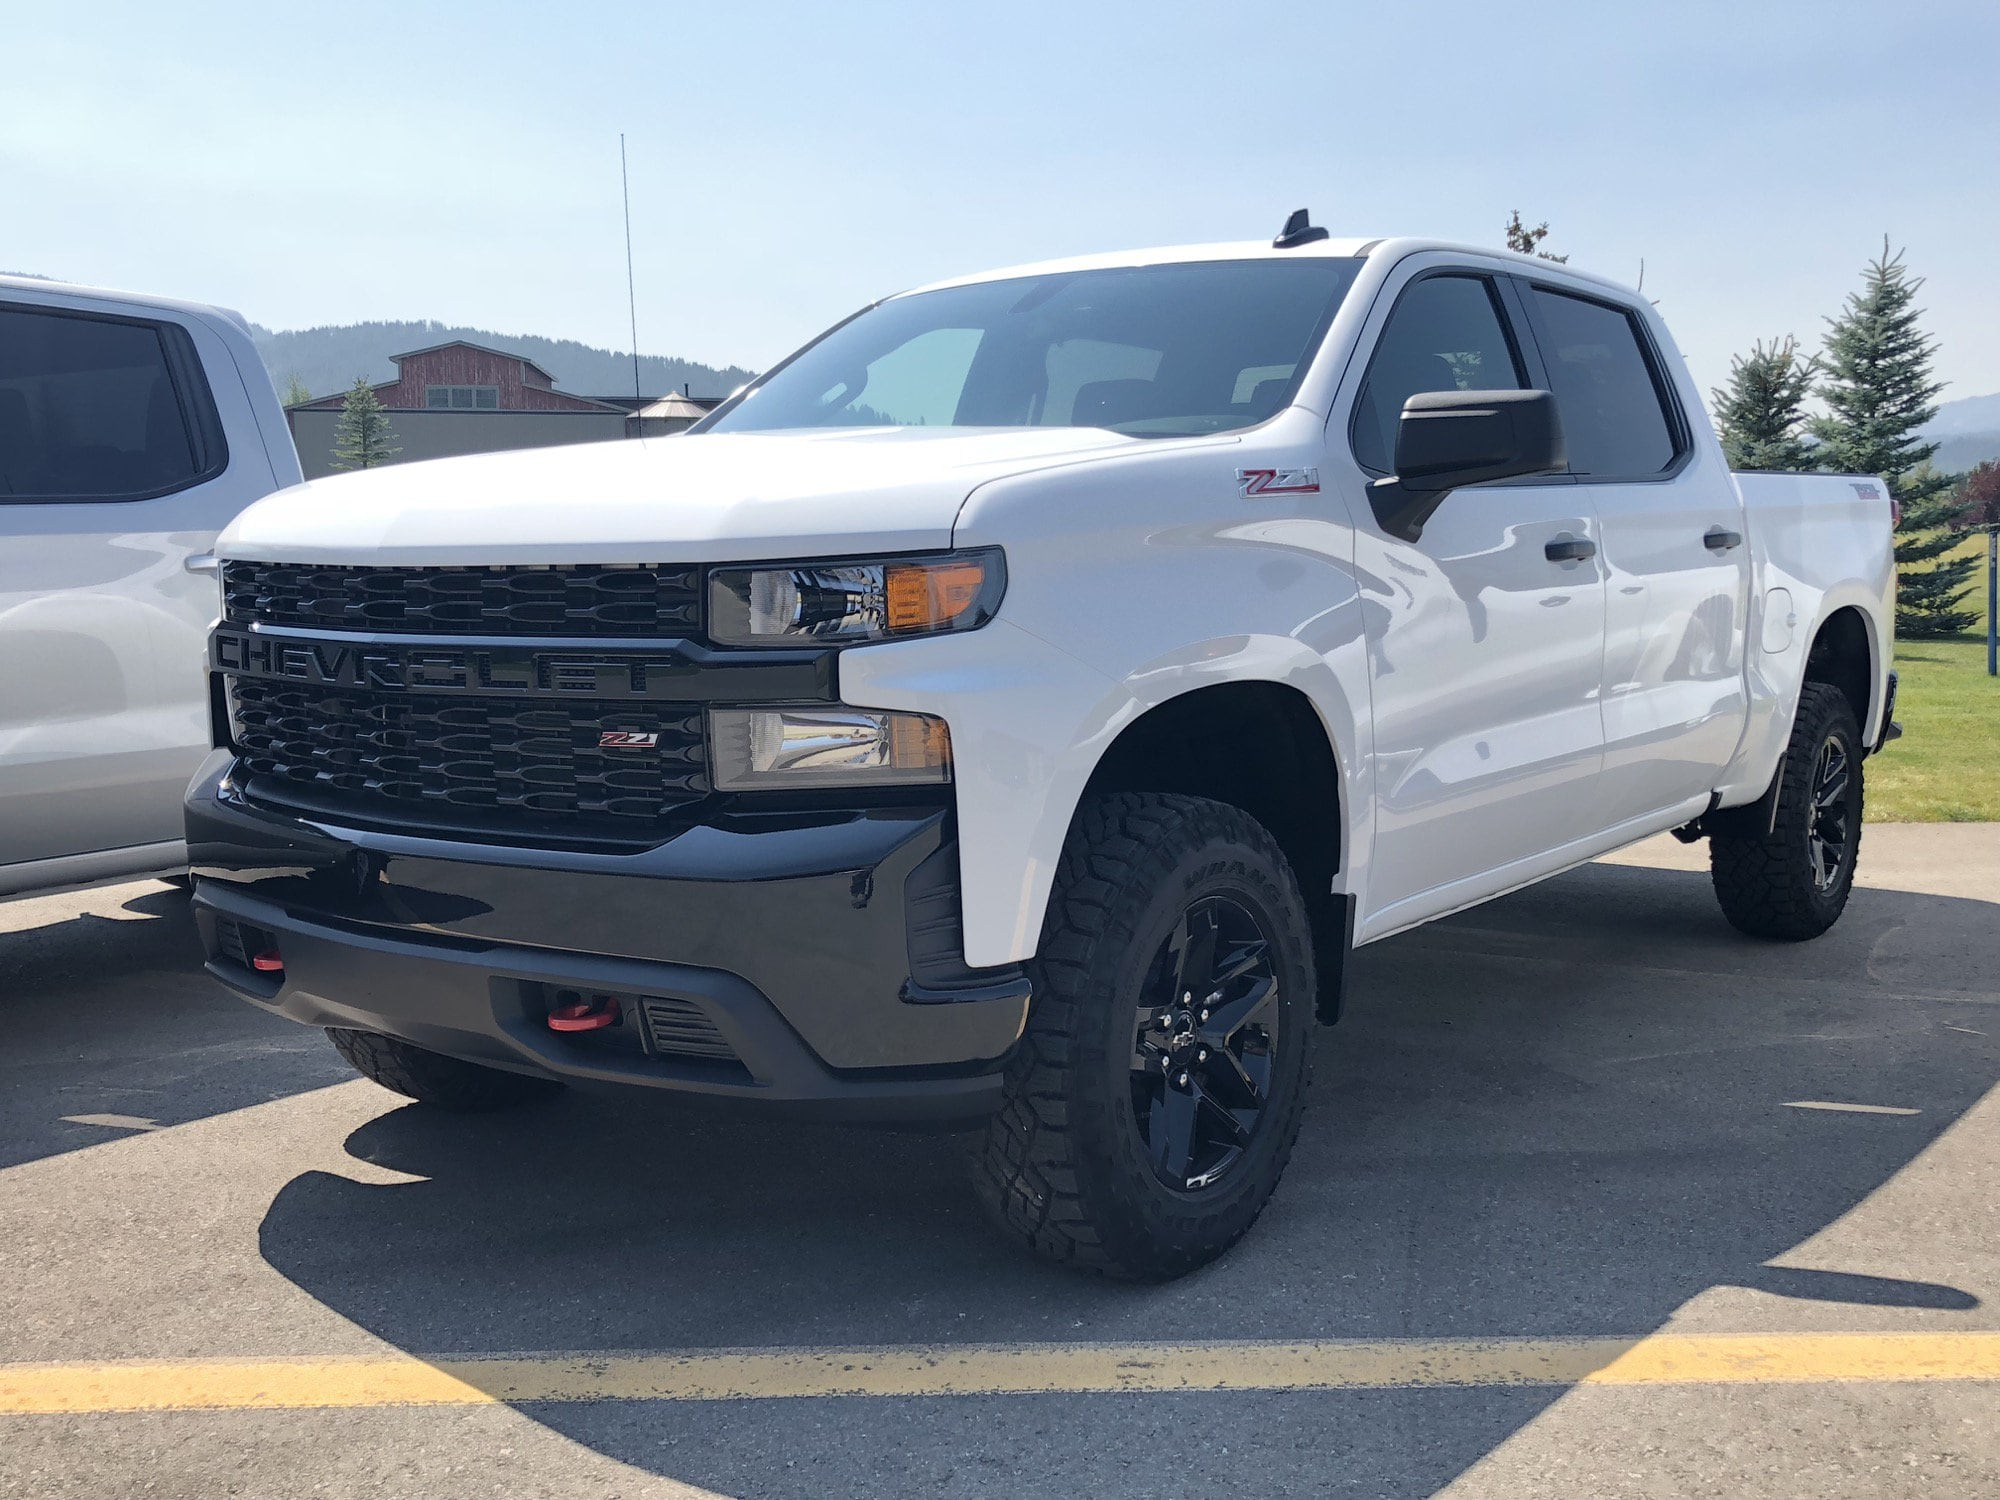 2020 Chevy Silverado Trailboss Z71 Review